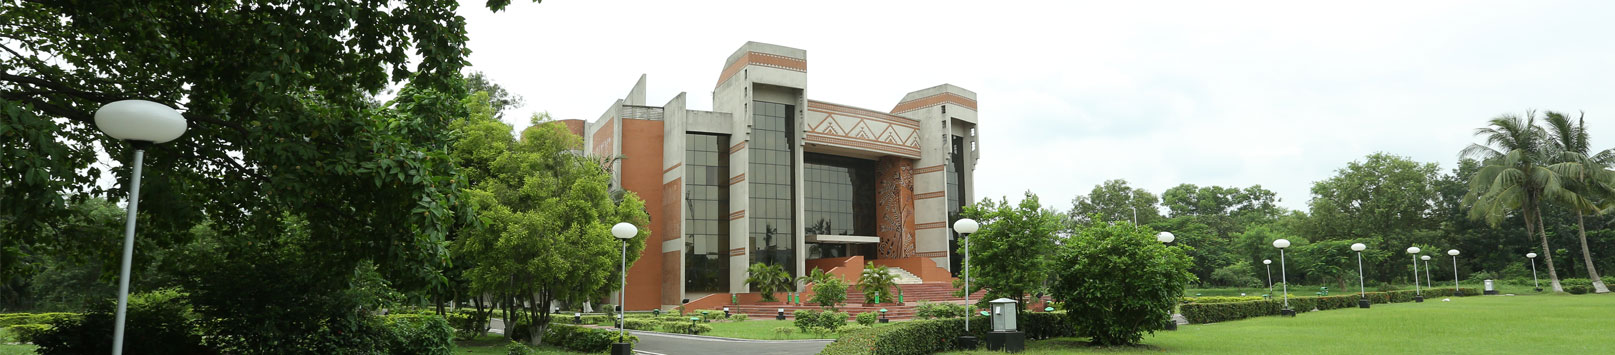 100% summer internship placement at IIM Calcutta; Accenture top recruiter